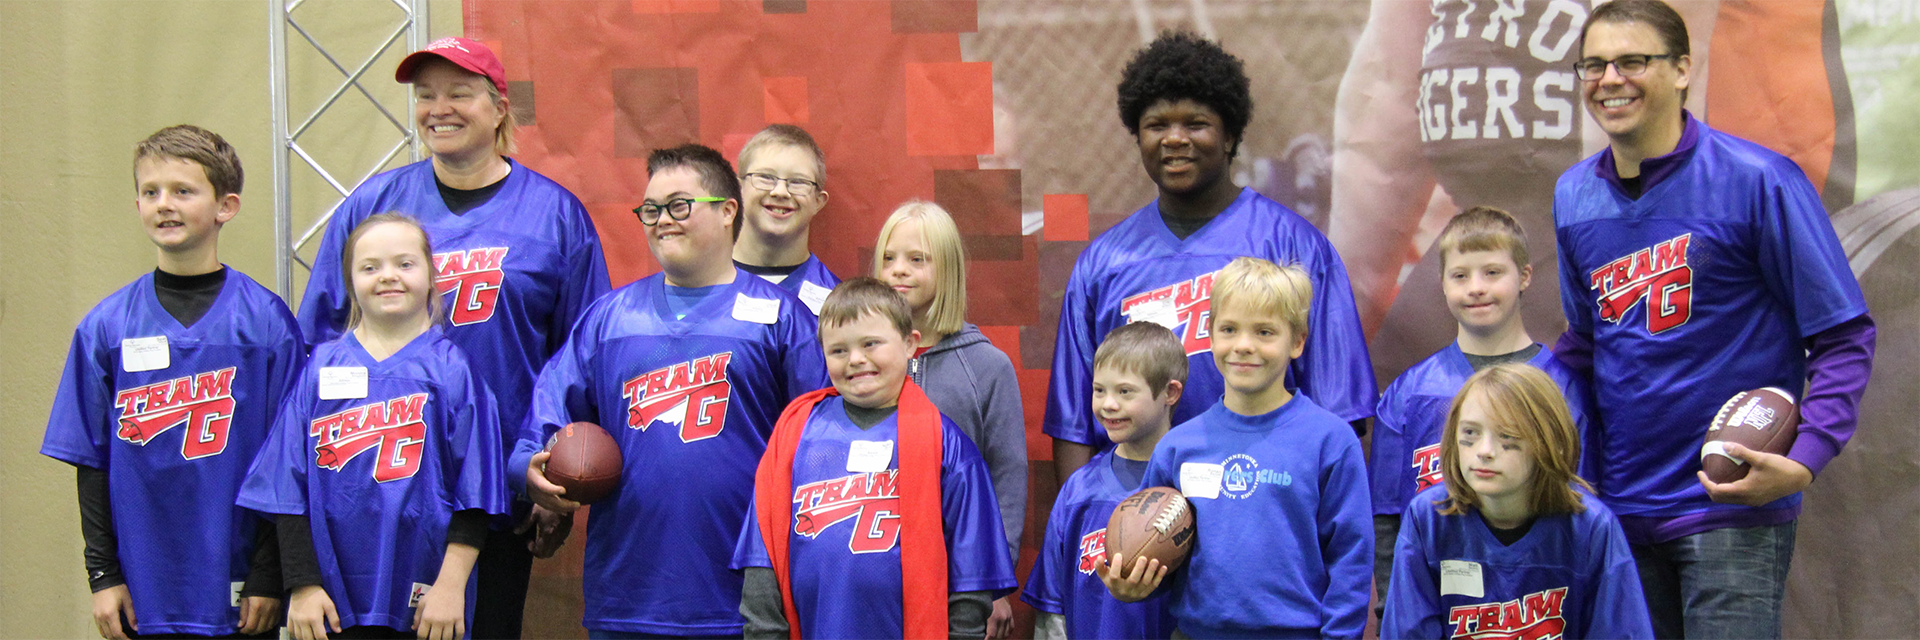 A group of Special Olympics Minnesota athletes aged 8-12 with two adult coaches